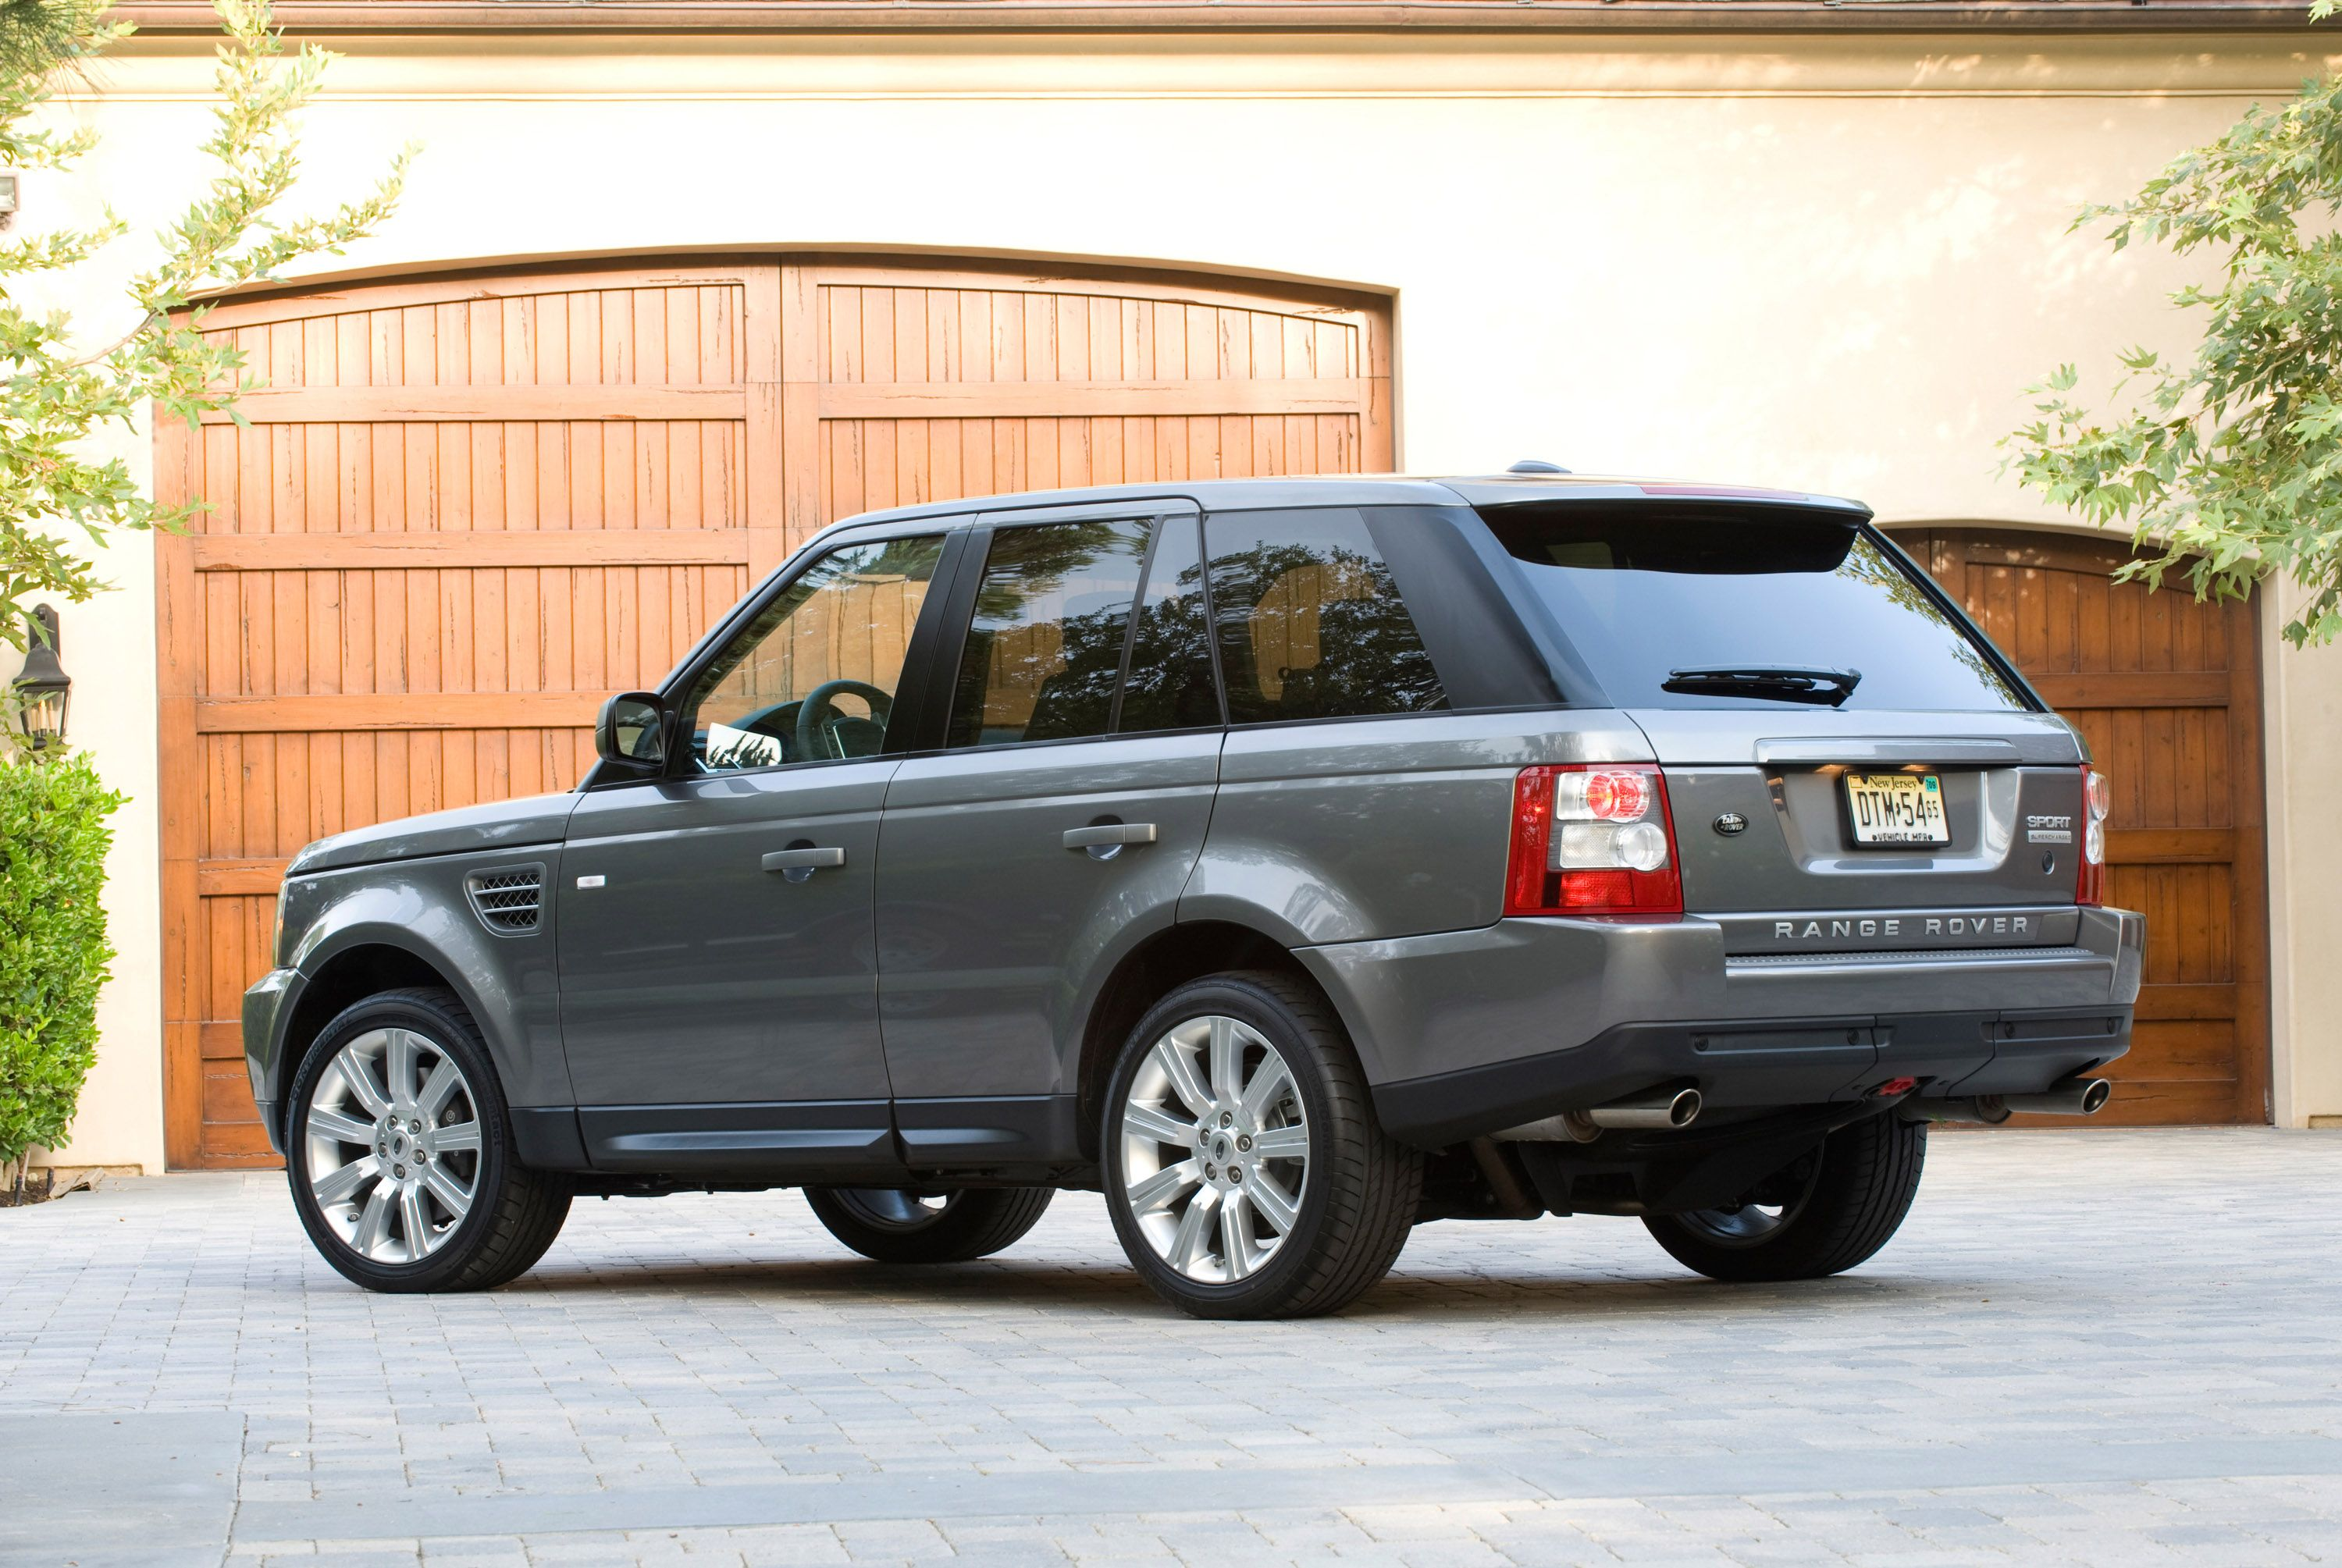 Range Rover 2012 Supercharged Cars Pinterest